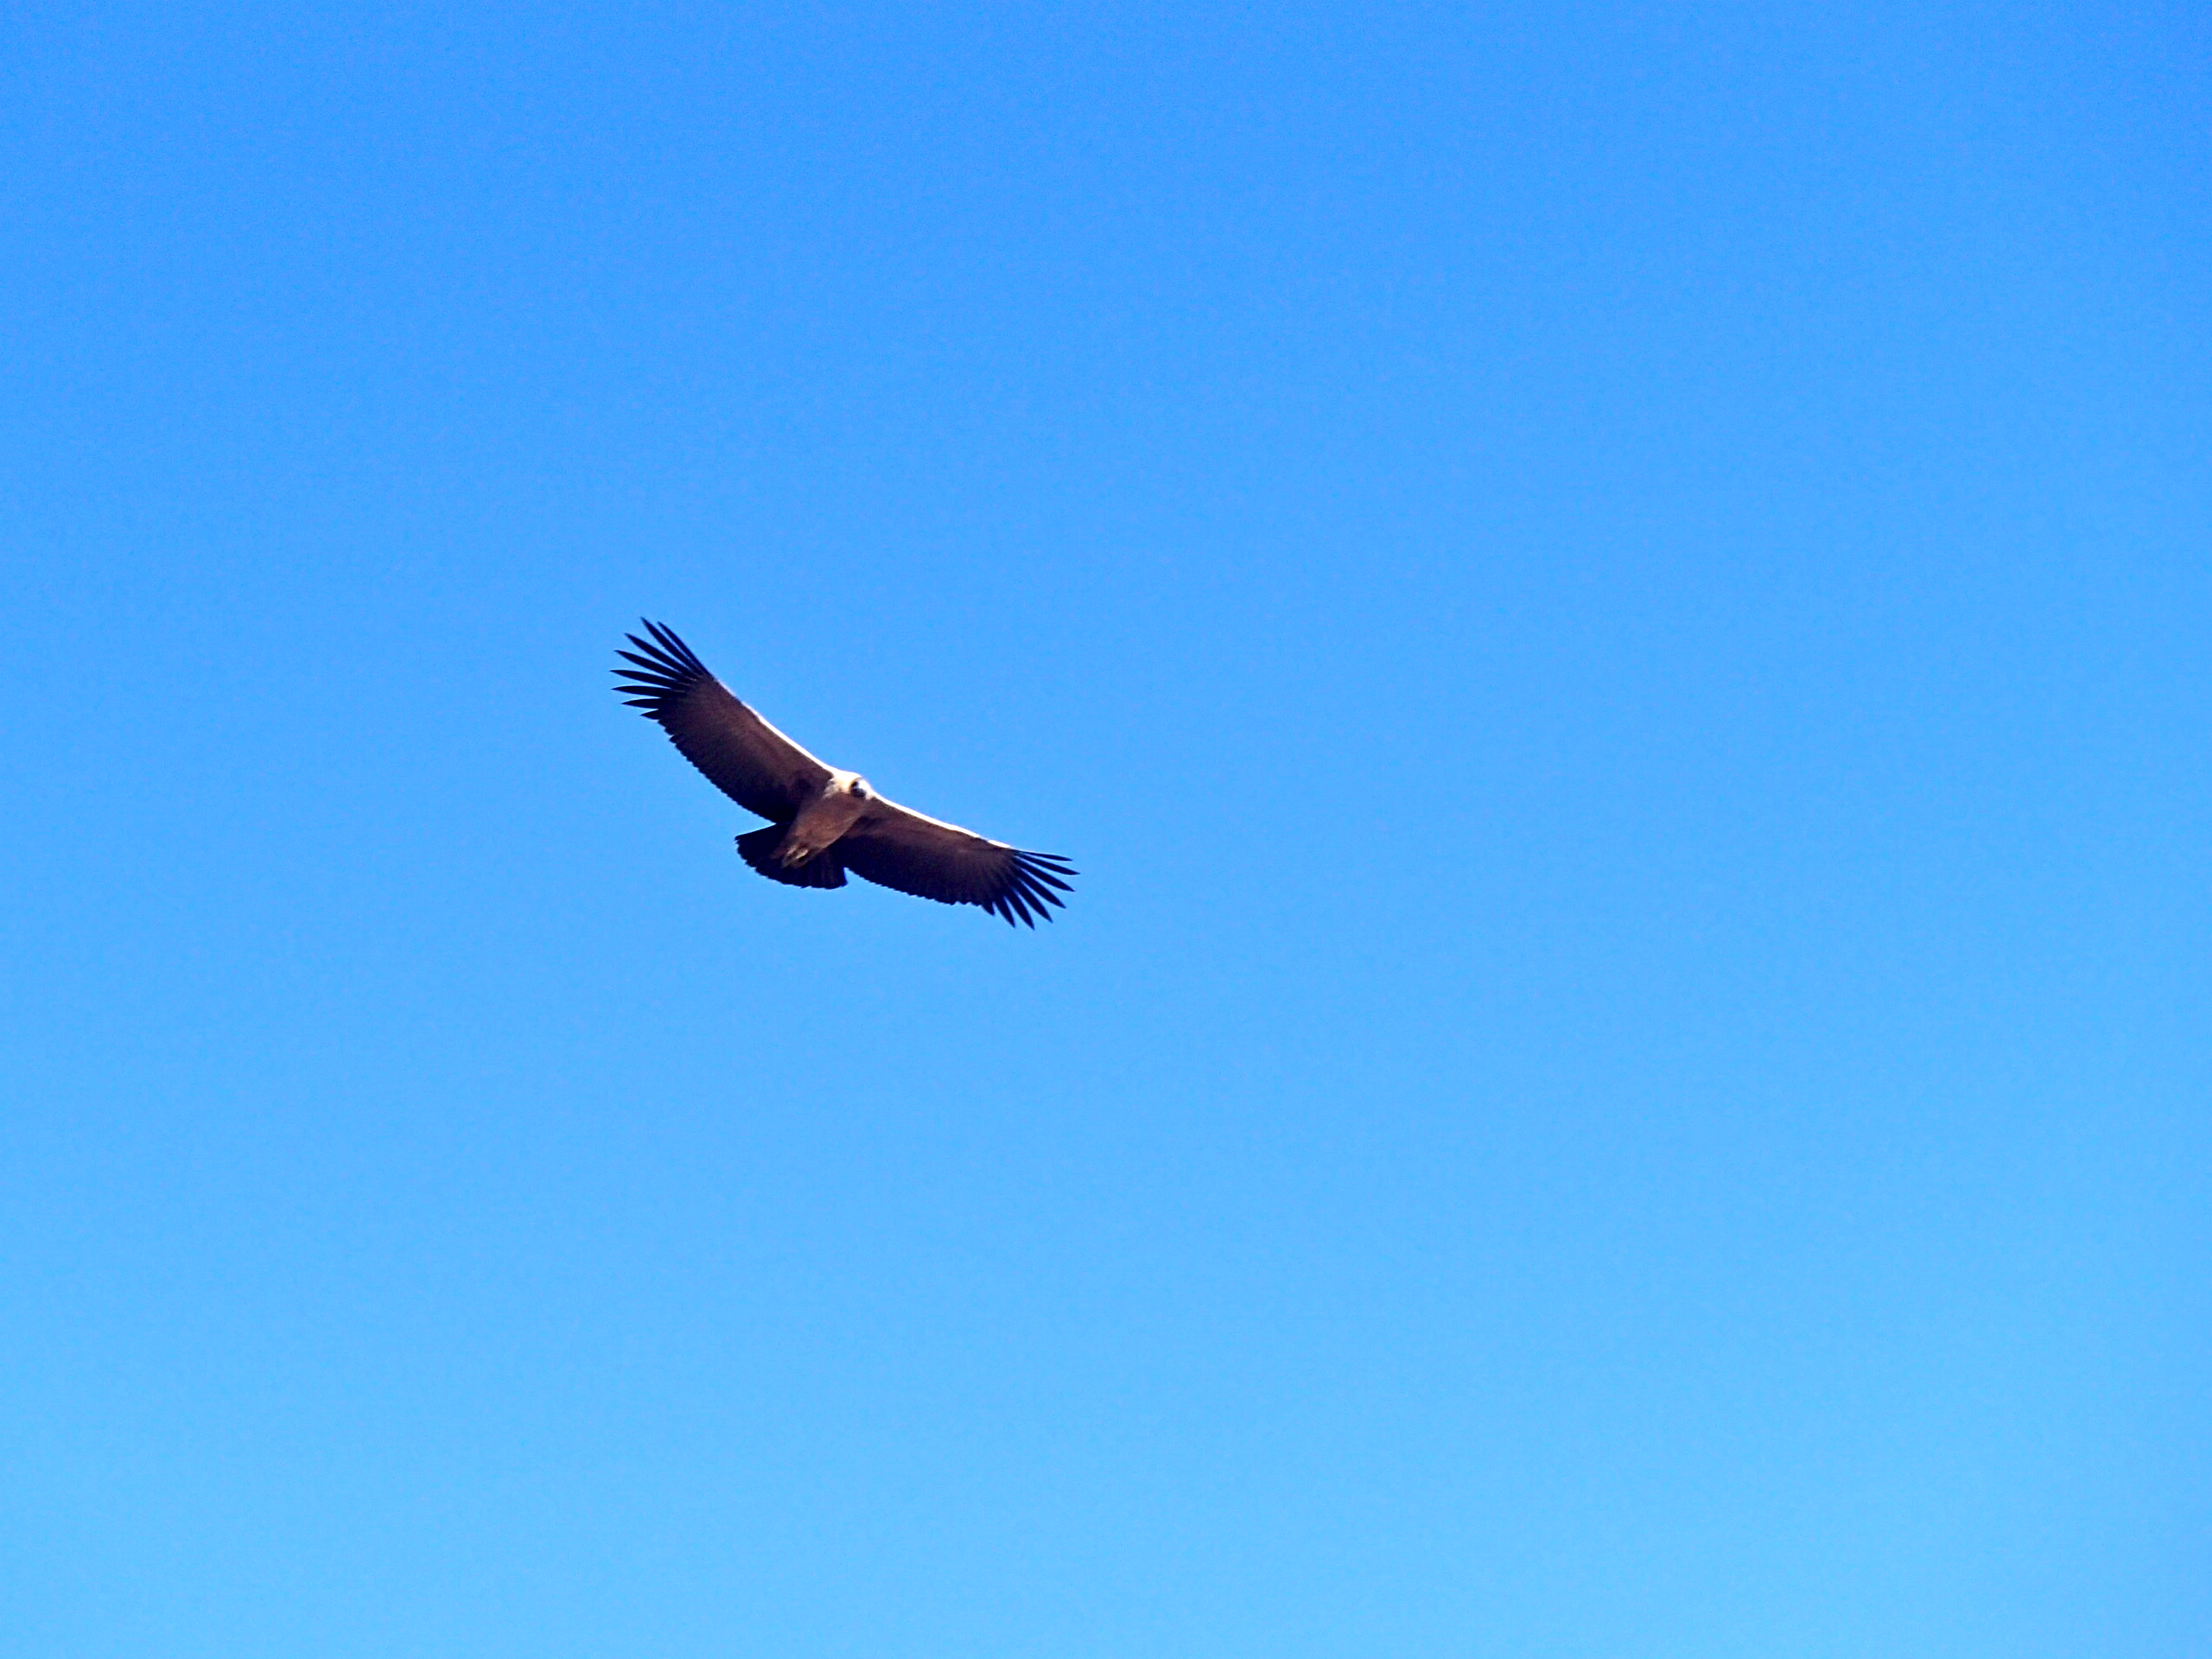 colca canyon peru Cruz del Condors where can I see condors in the wild